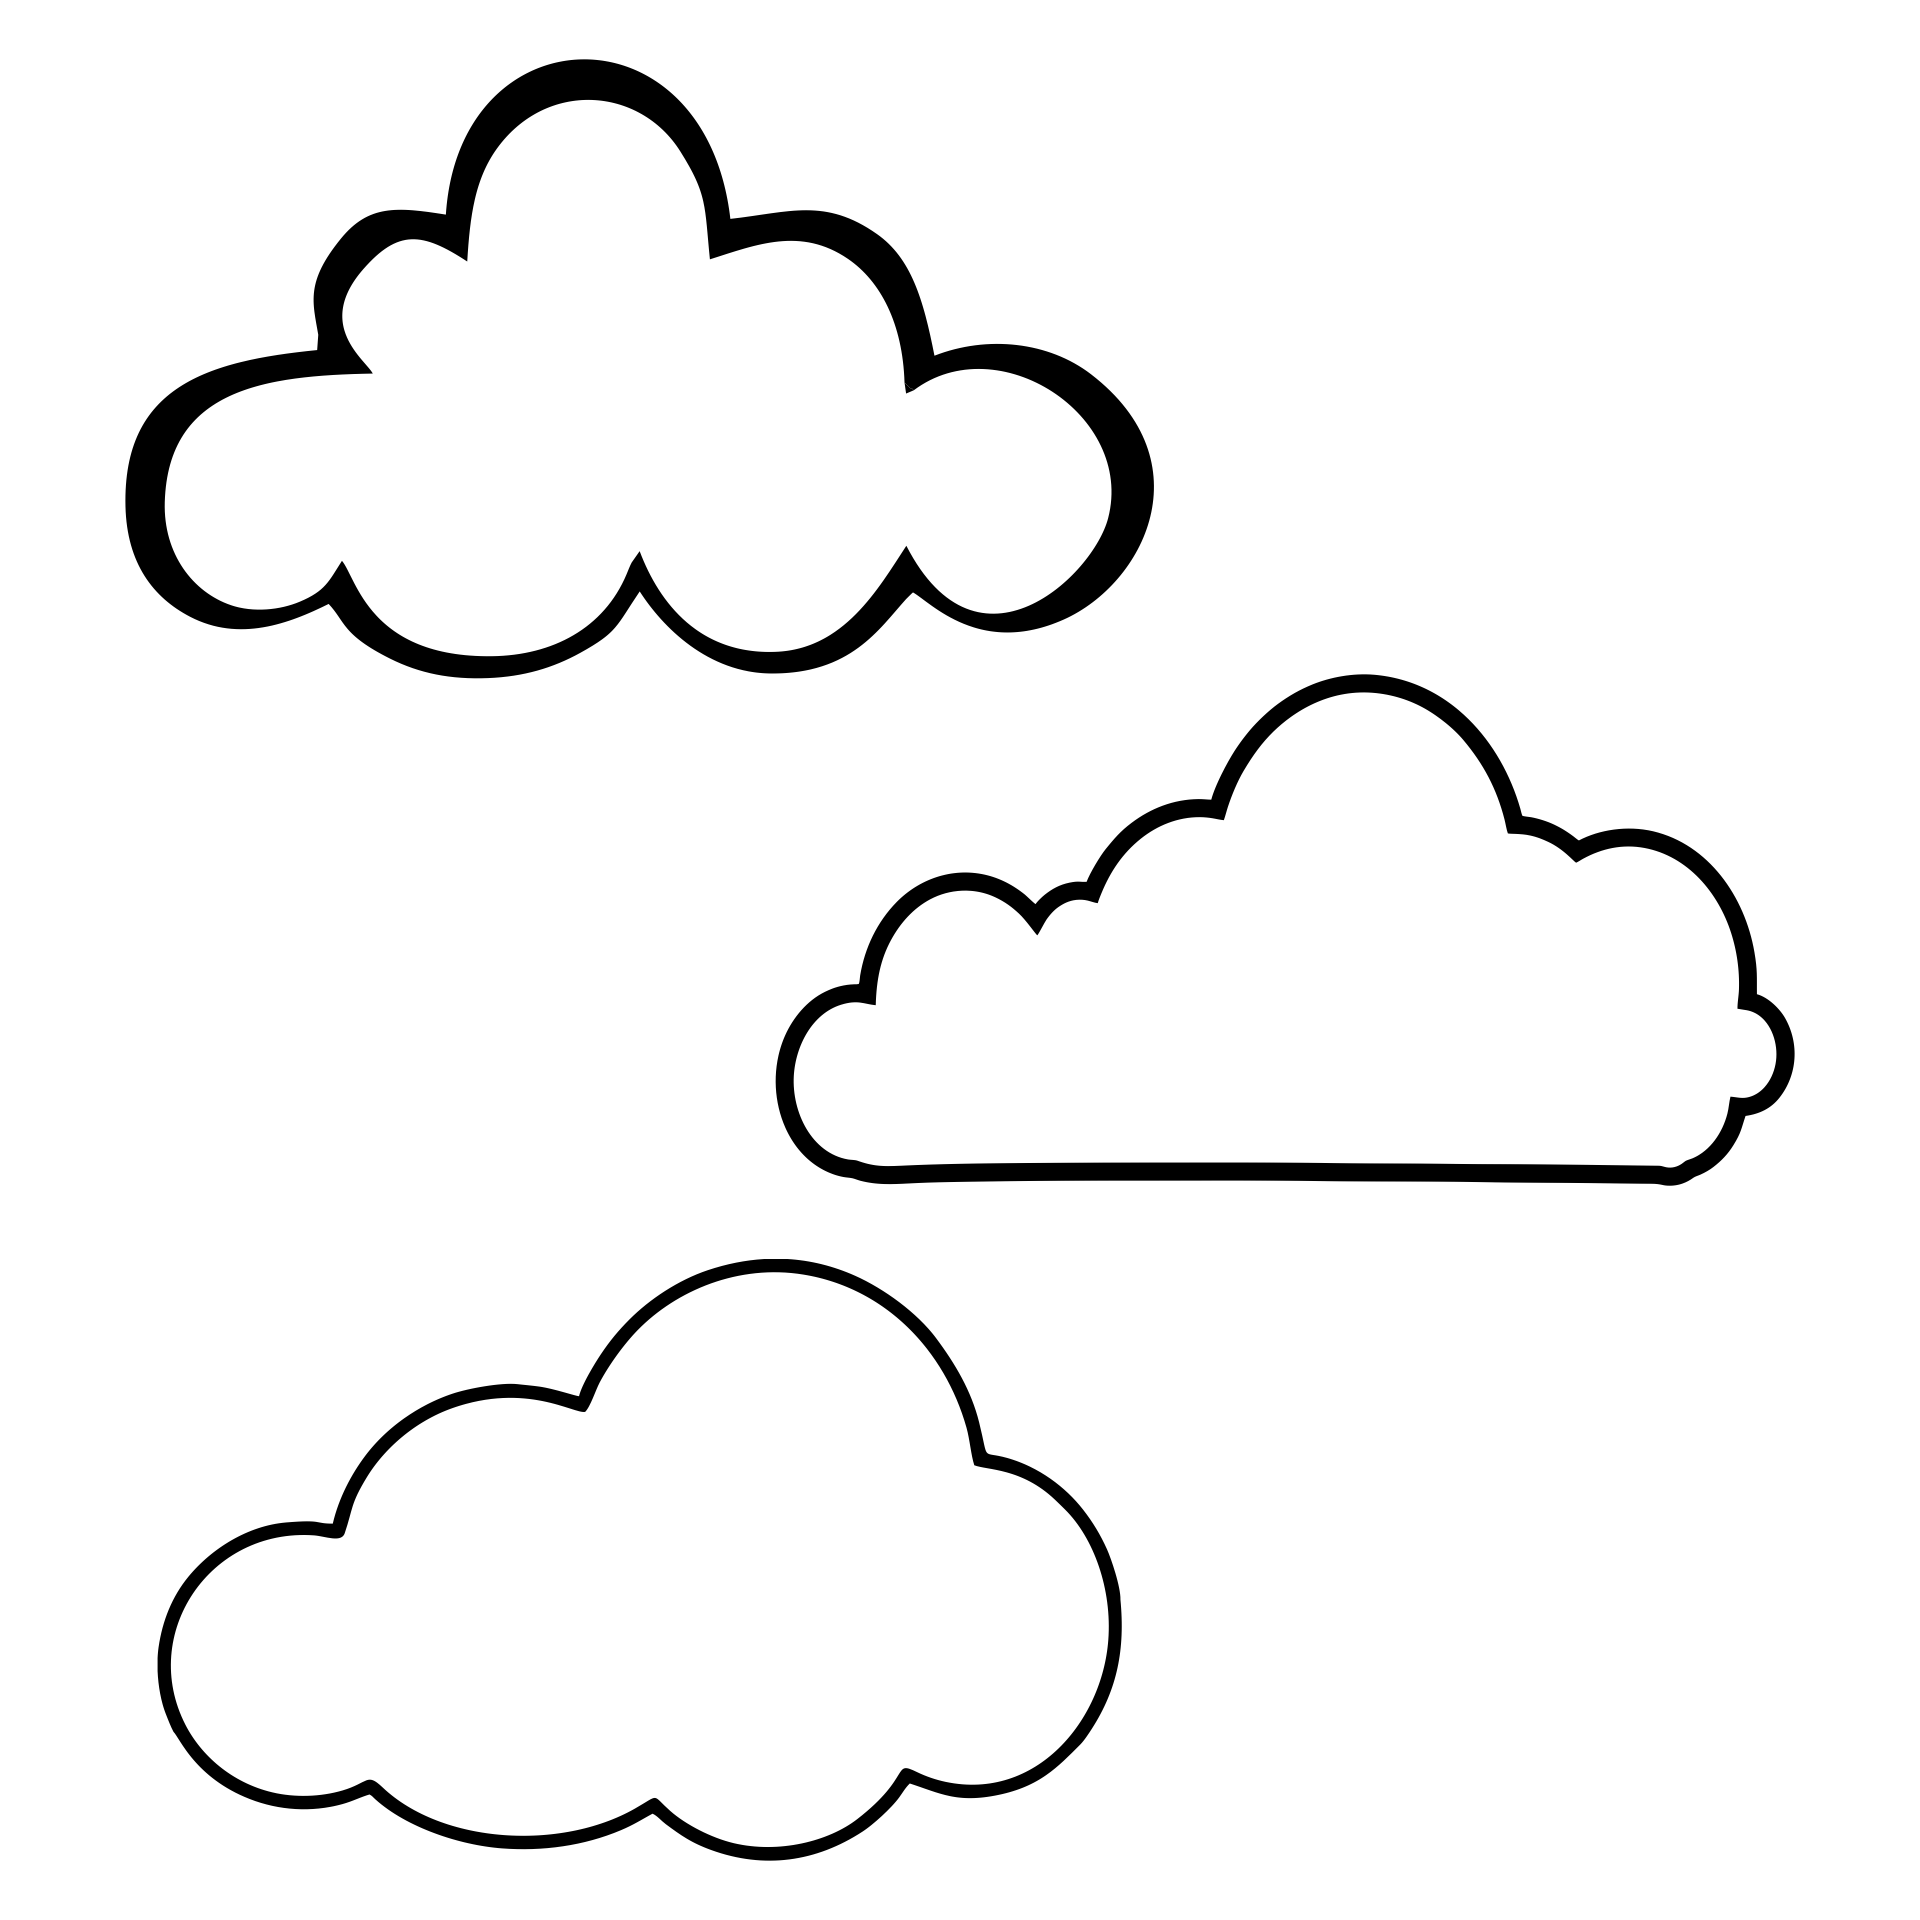 Cloud Shapes Clip Art